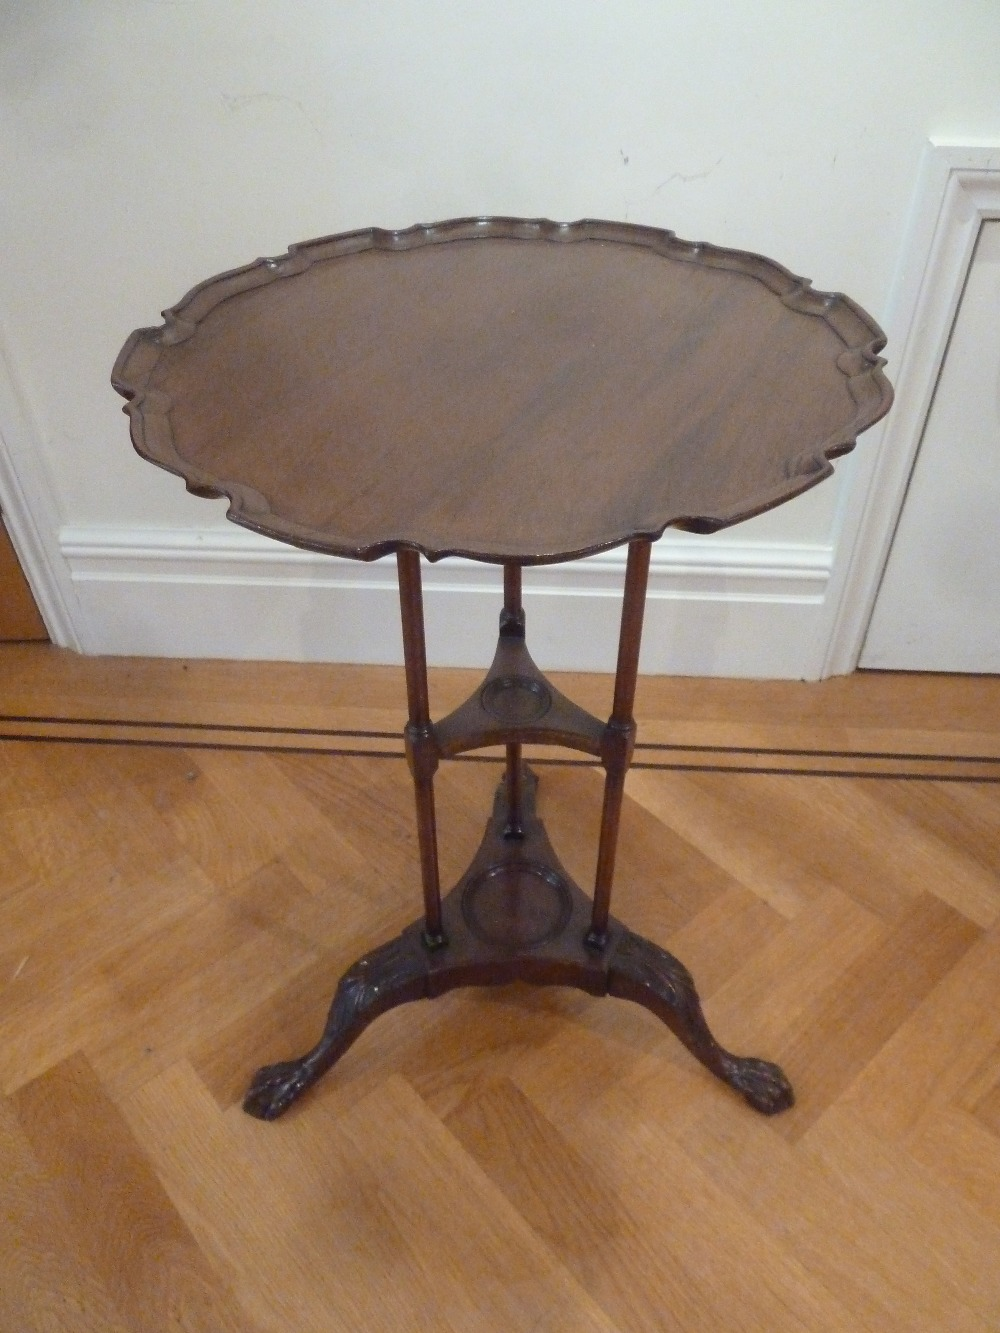 Lot 30 - A mahogany tea table circular Chippendale style border on three outswept legs